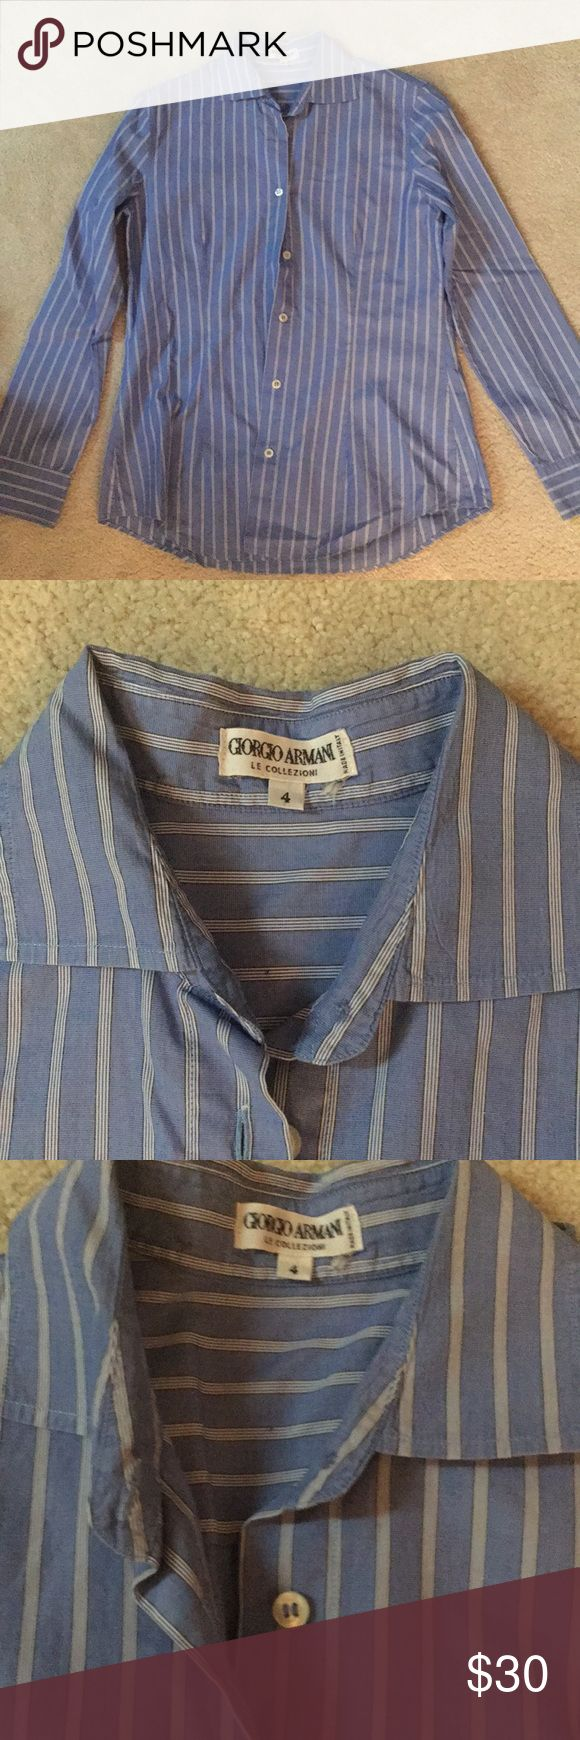 Giorgio Armani Oxford Button down Size 4 Size 4-EURO Size Made in Italy blue with white stripes No marks or imperfections Would fit small petite woman or young girl Giorgio Armani Tops Button Down Shirts